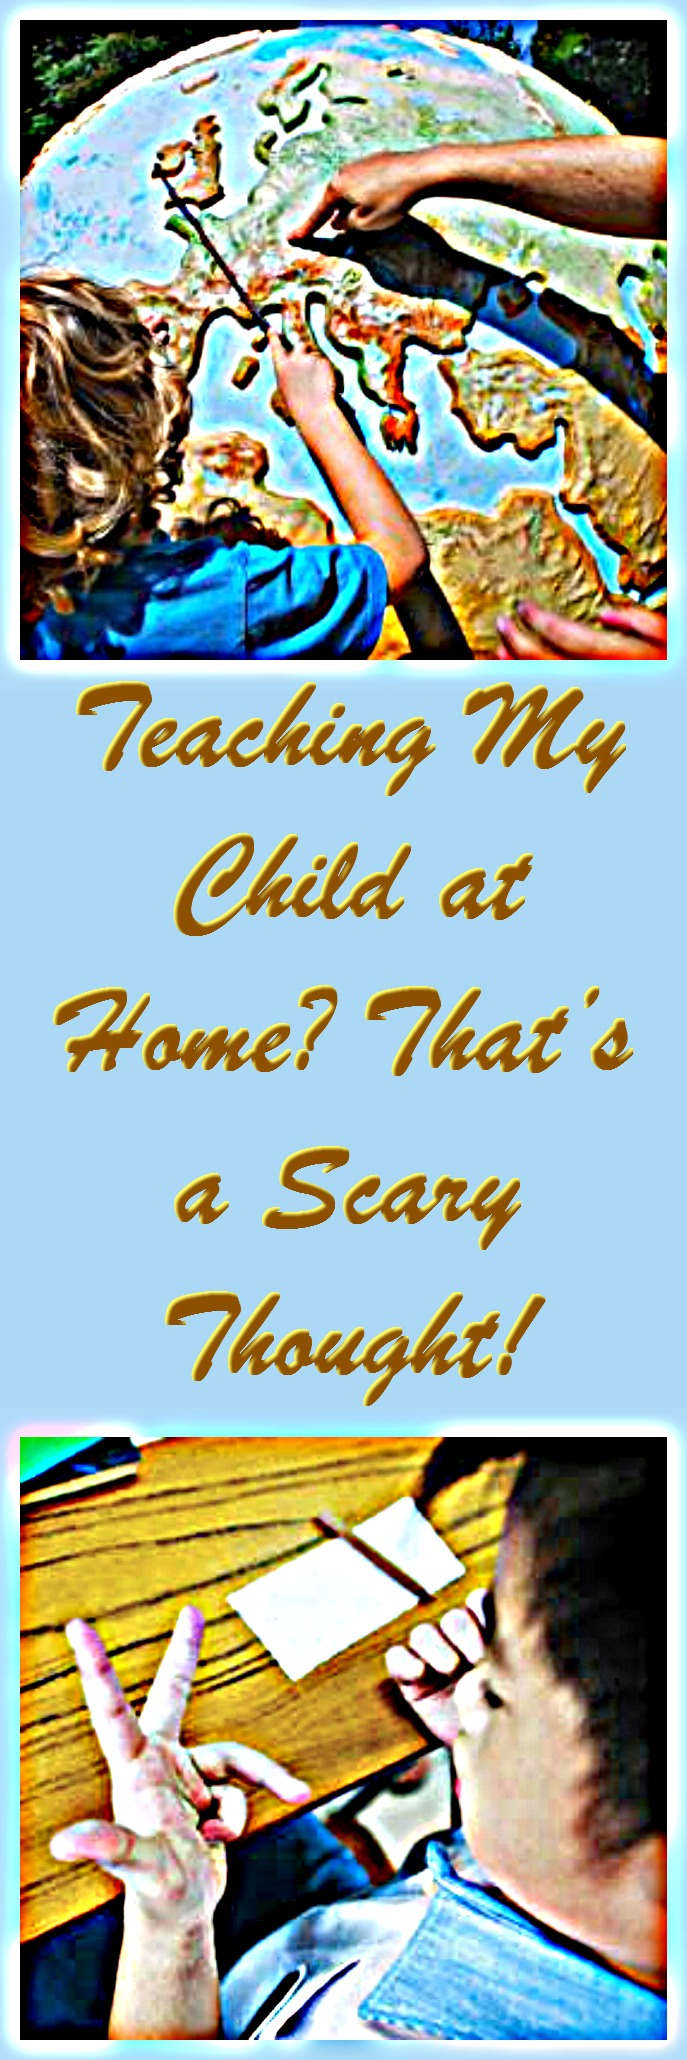 Teaching My Child at Home? That's a Scary Thought!